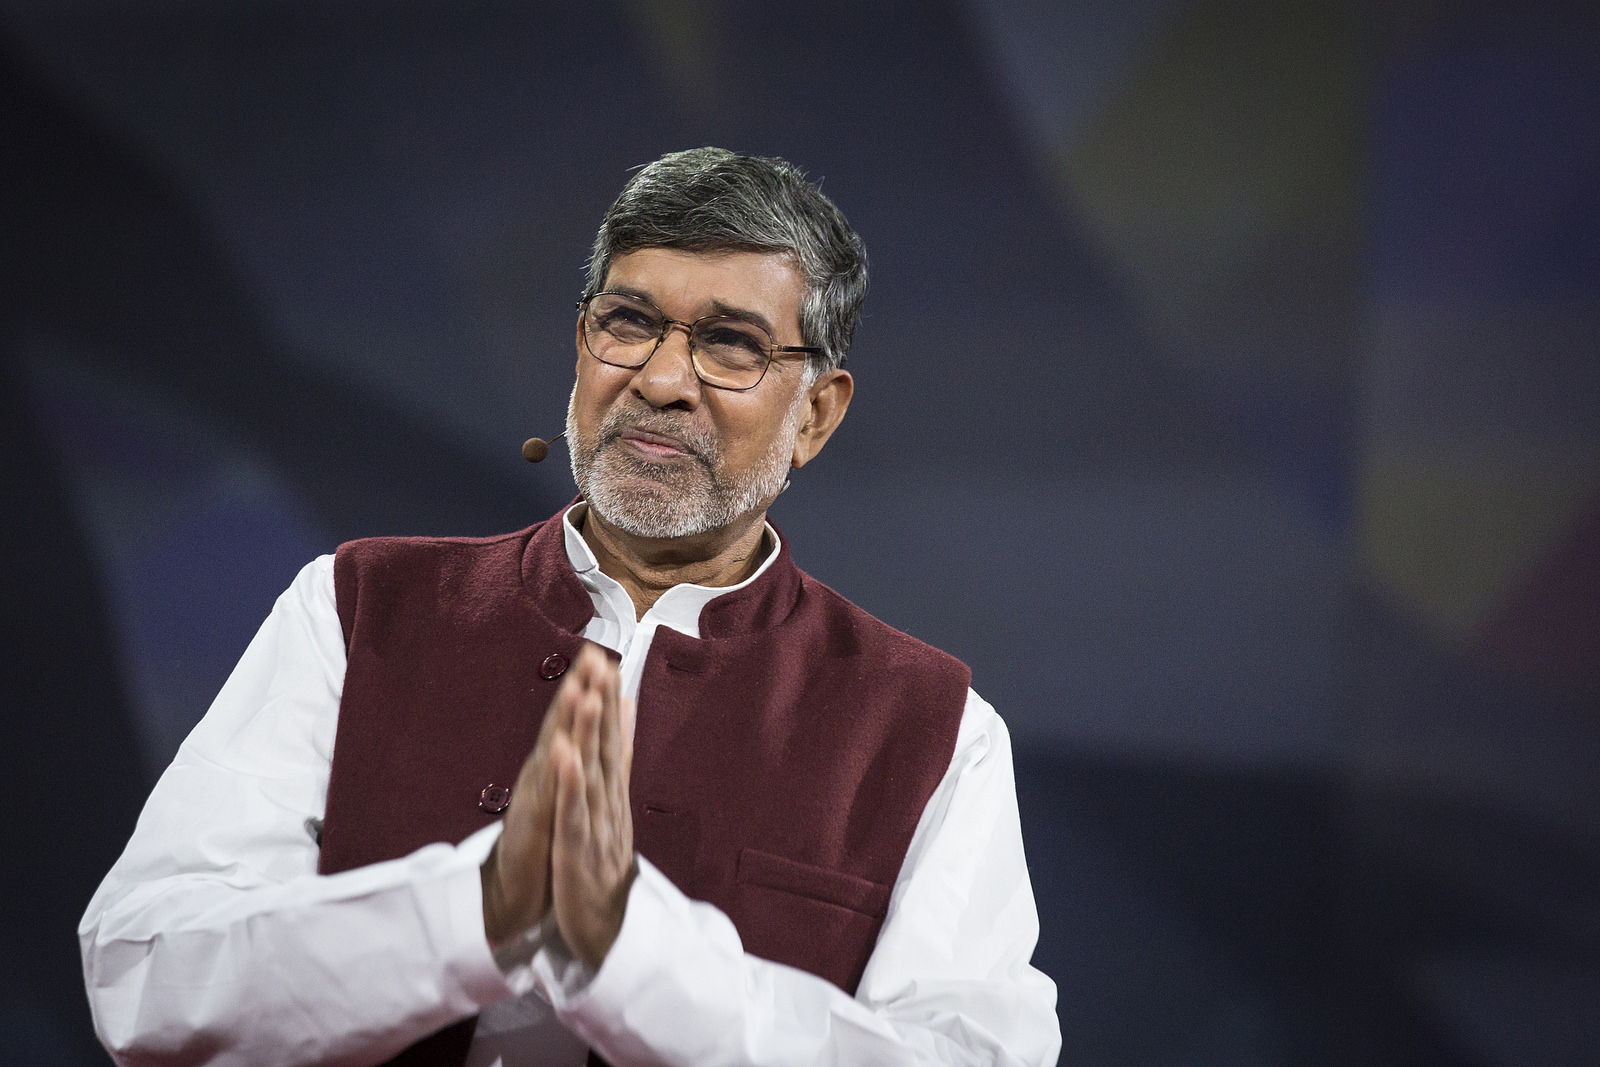 Nobel Peace Prize winner Kailash Satyarthi didn't talk about peace—he talked about anger. Read more about his talk. Photo: Bret Hartman/TED http://blog.ted.com/im-urging-you-to-be-angry-kailash-satyarthi-live-at-ted2015/